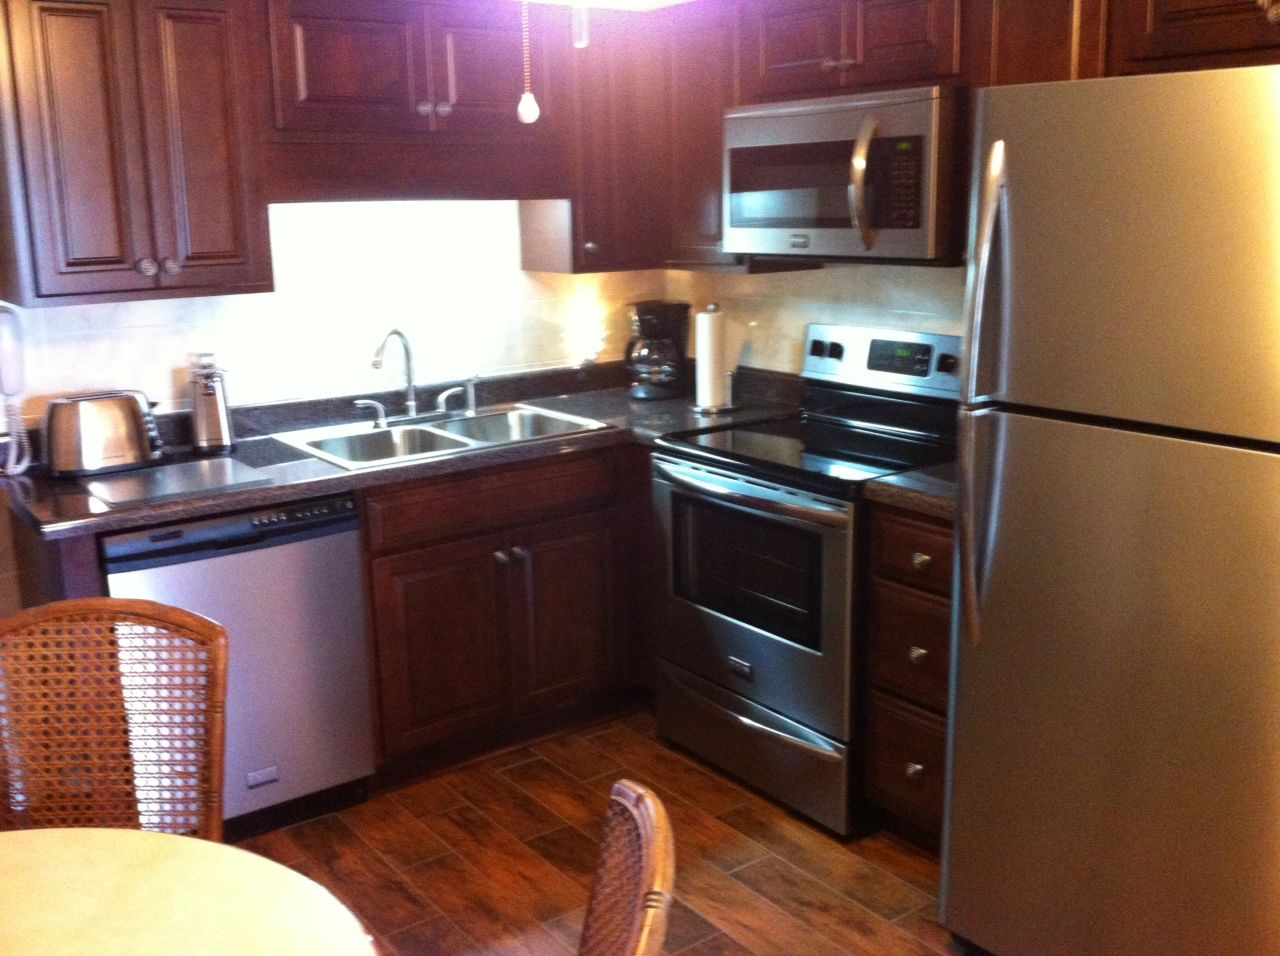 Kitchen Is Brand New W New Cabinets Stainless Steel Appliances Southpointe Villas Unit 6 Available For S Condos For Rent New Kitchen Cabinets Condo